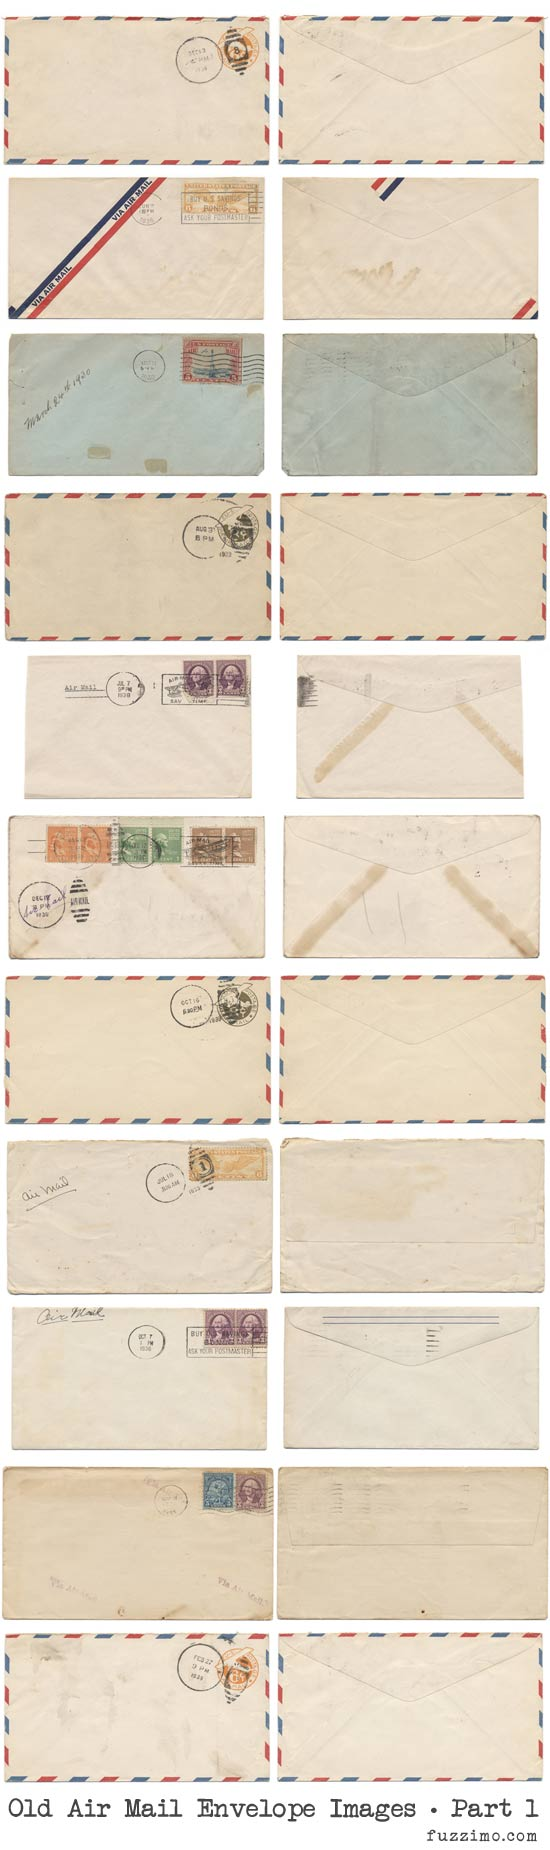 fzm-Old-Air-Mail-Envelopes-Part1-02